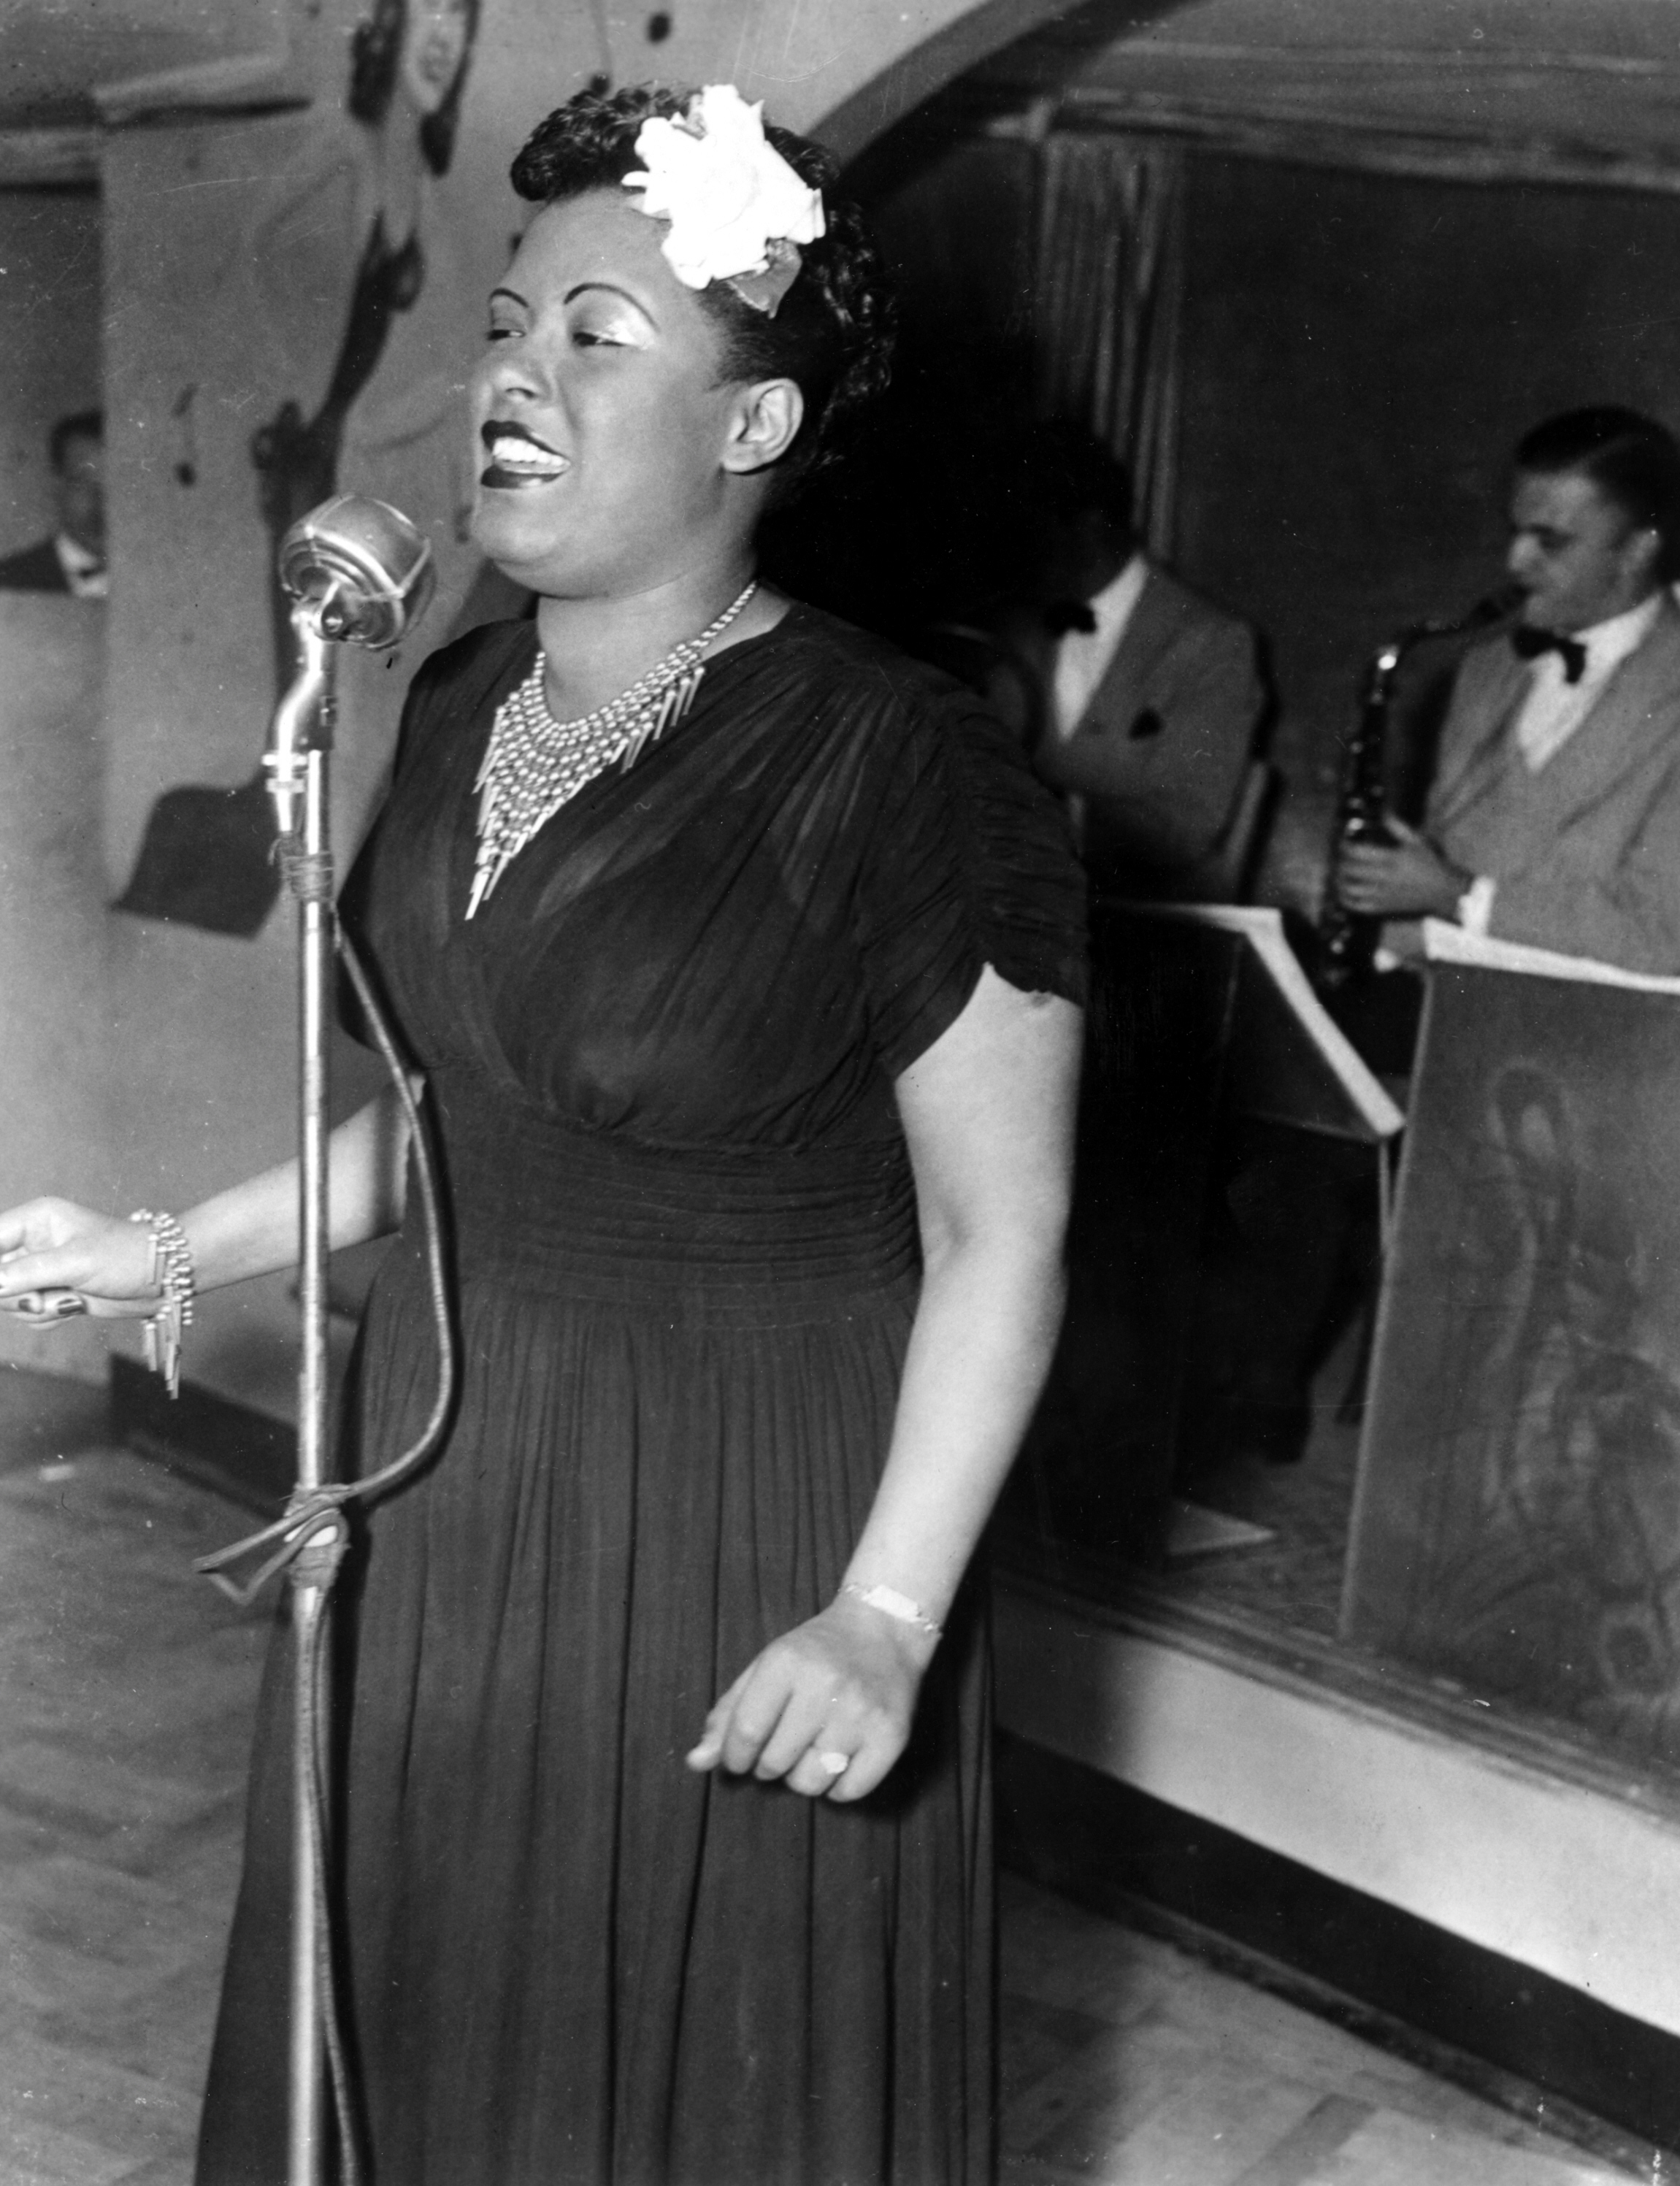 Billie Holiday circa 1940s